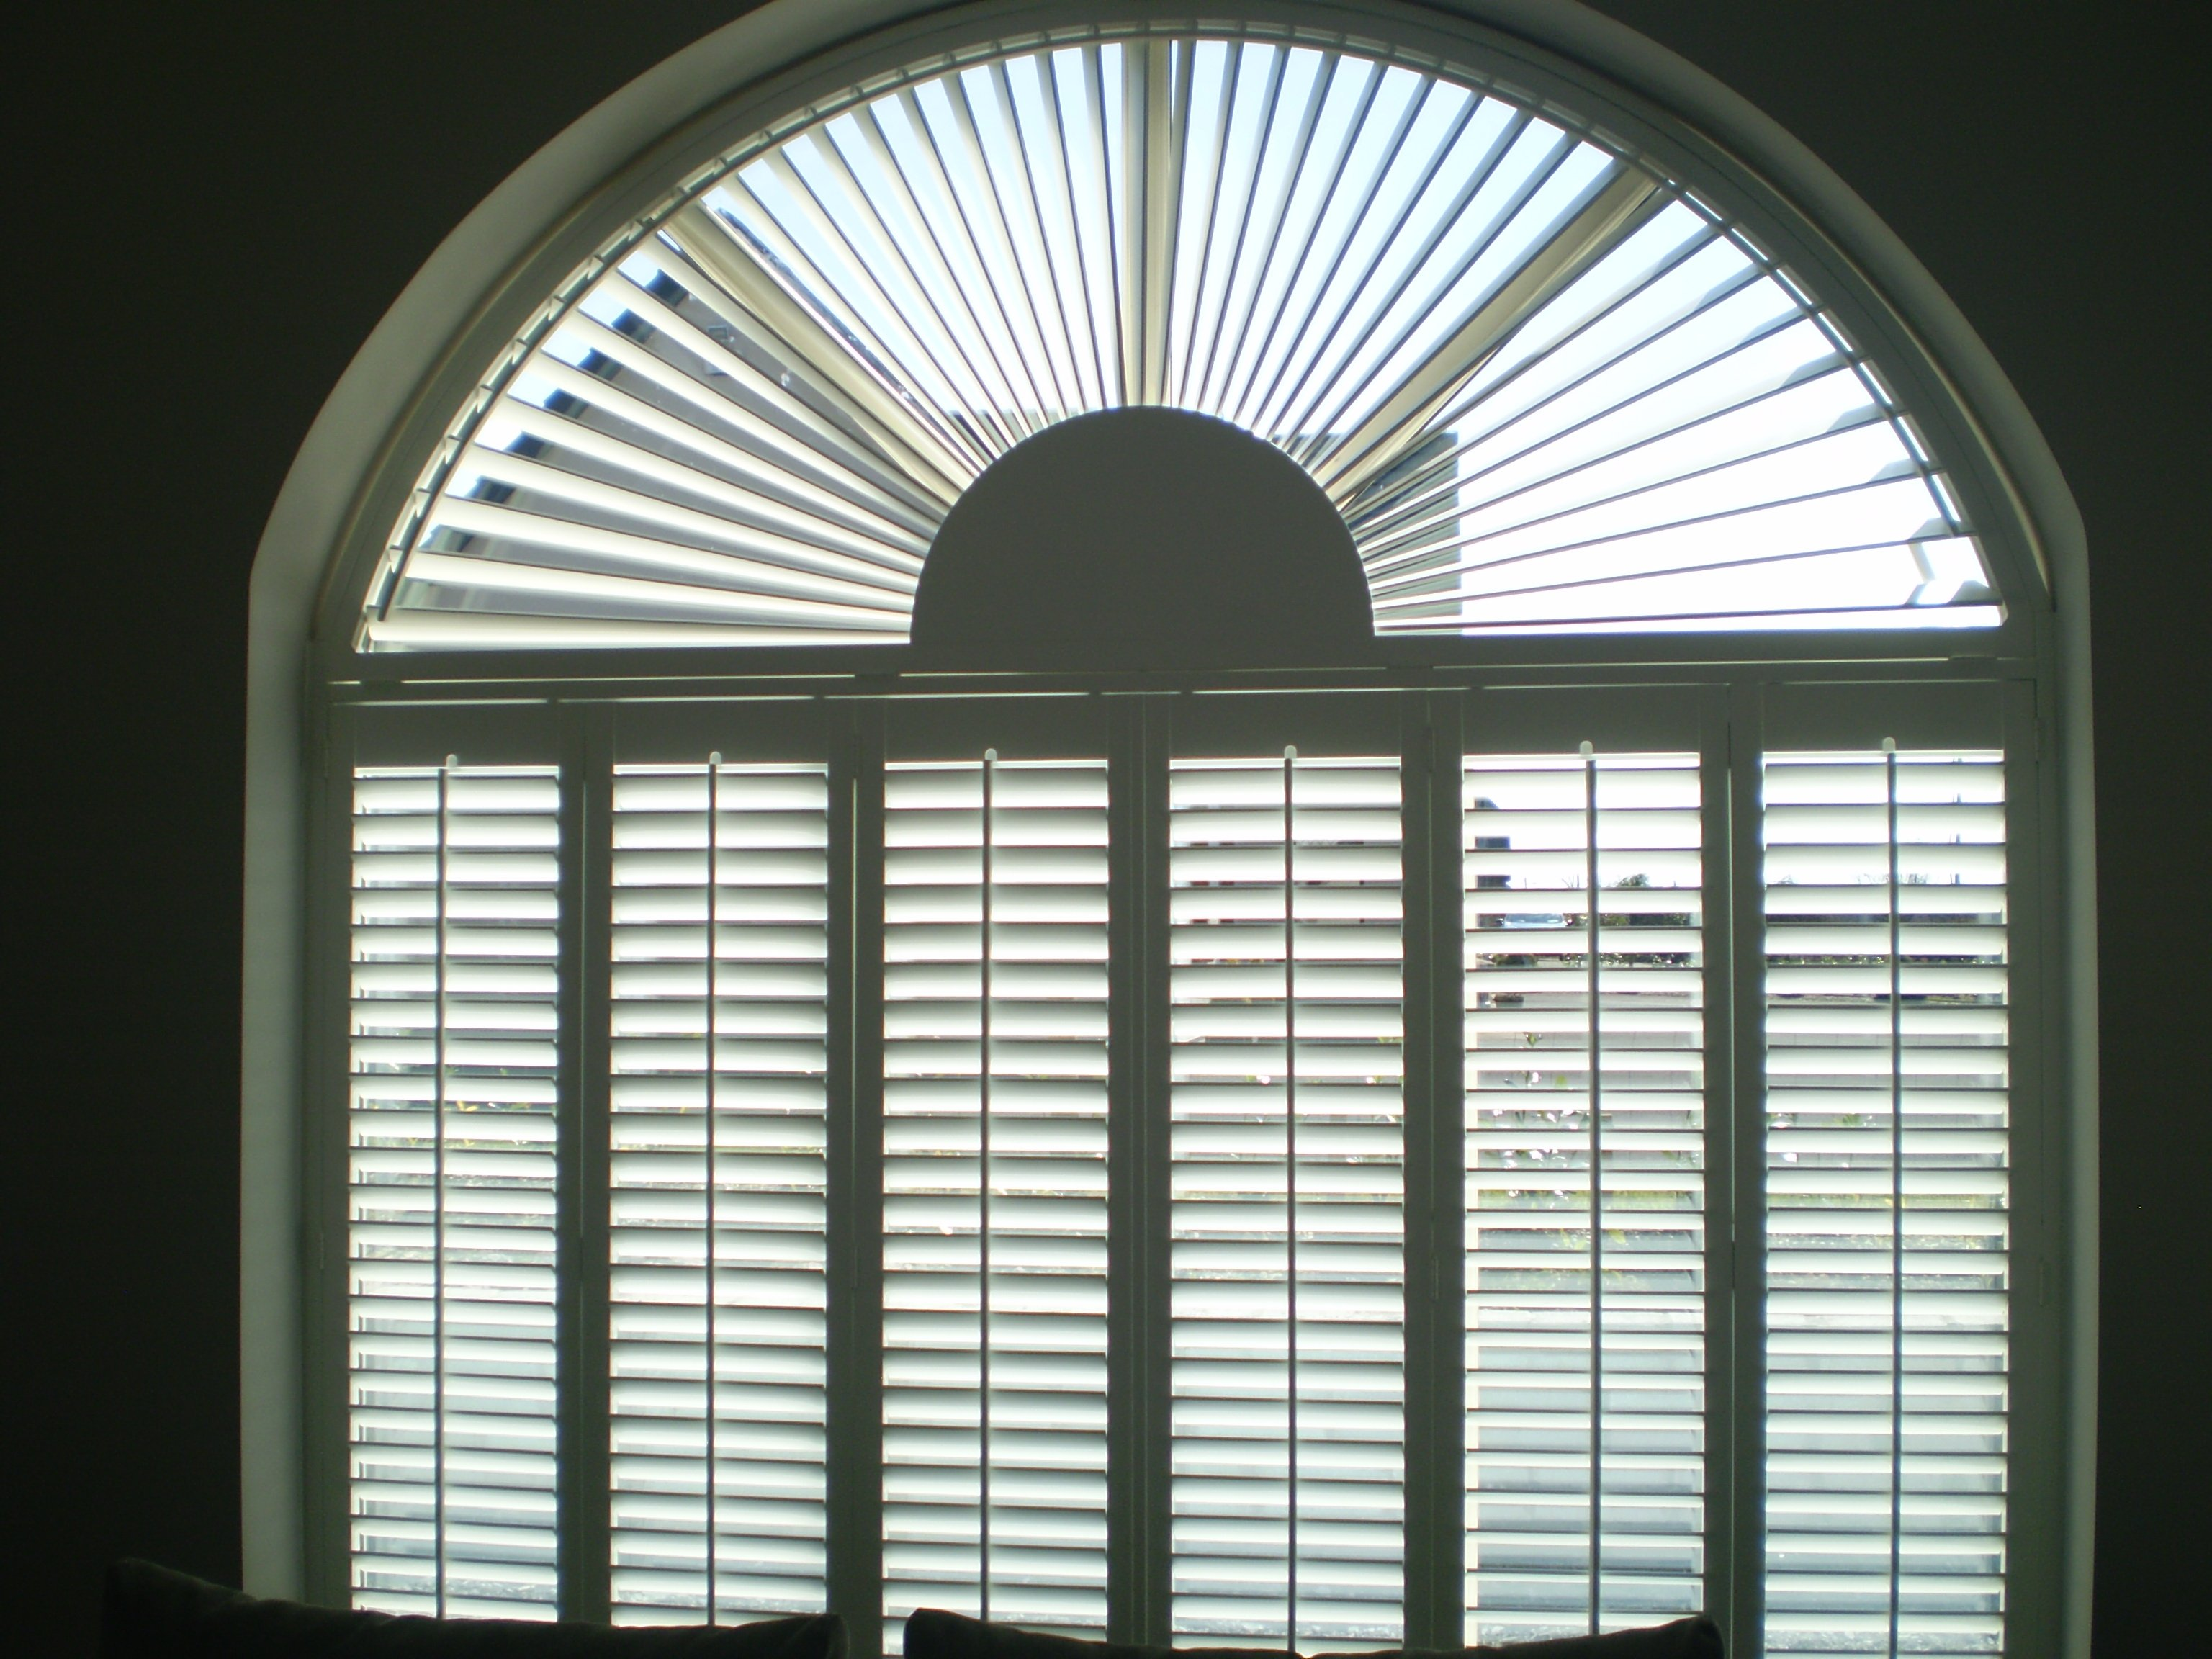 Arched window with sunburst shutter over six panels